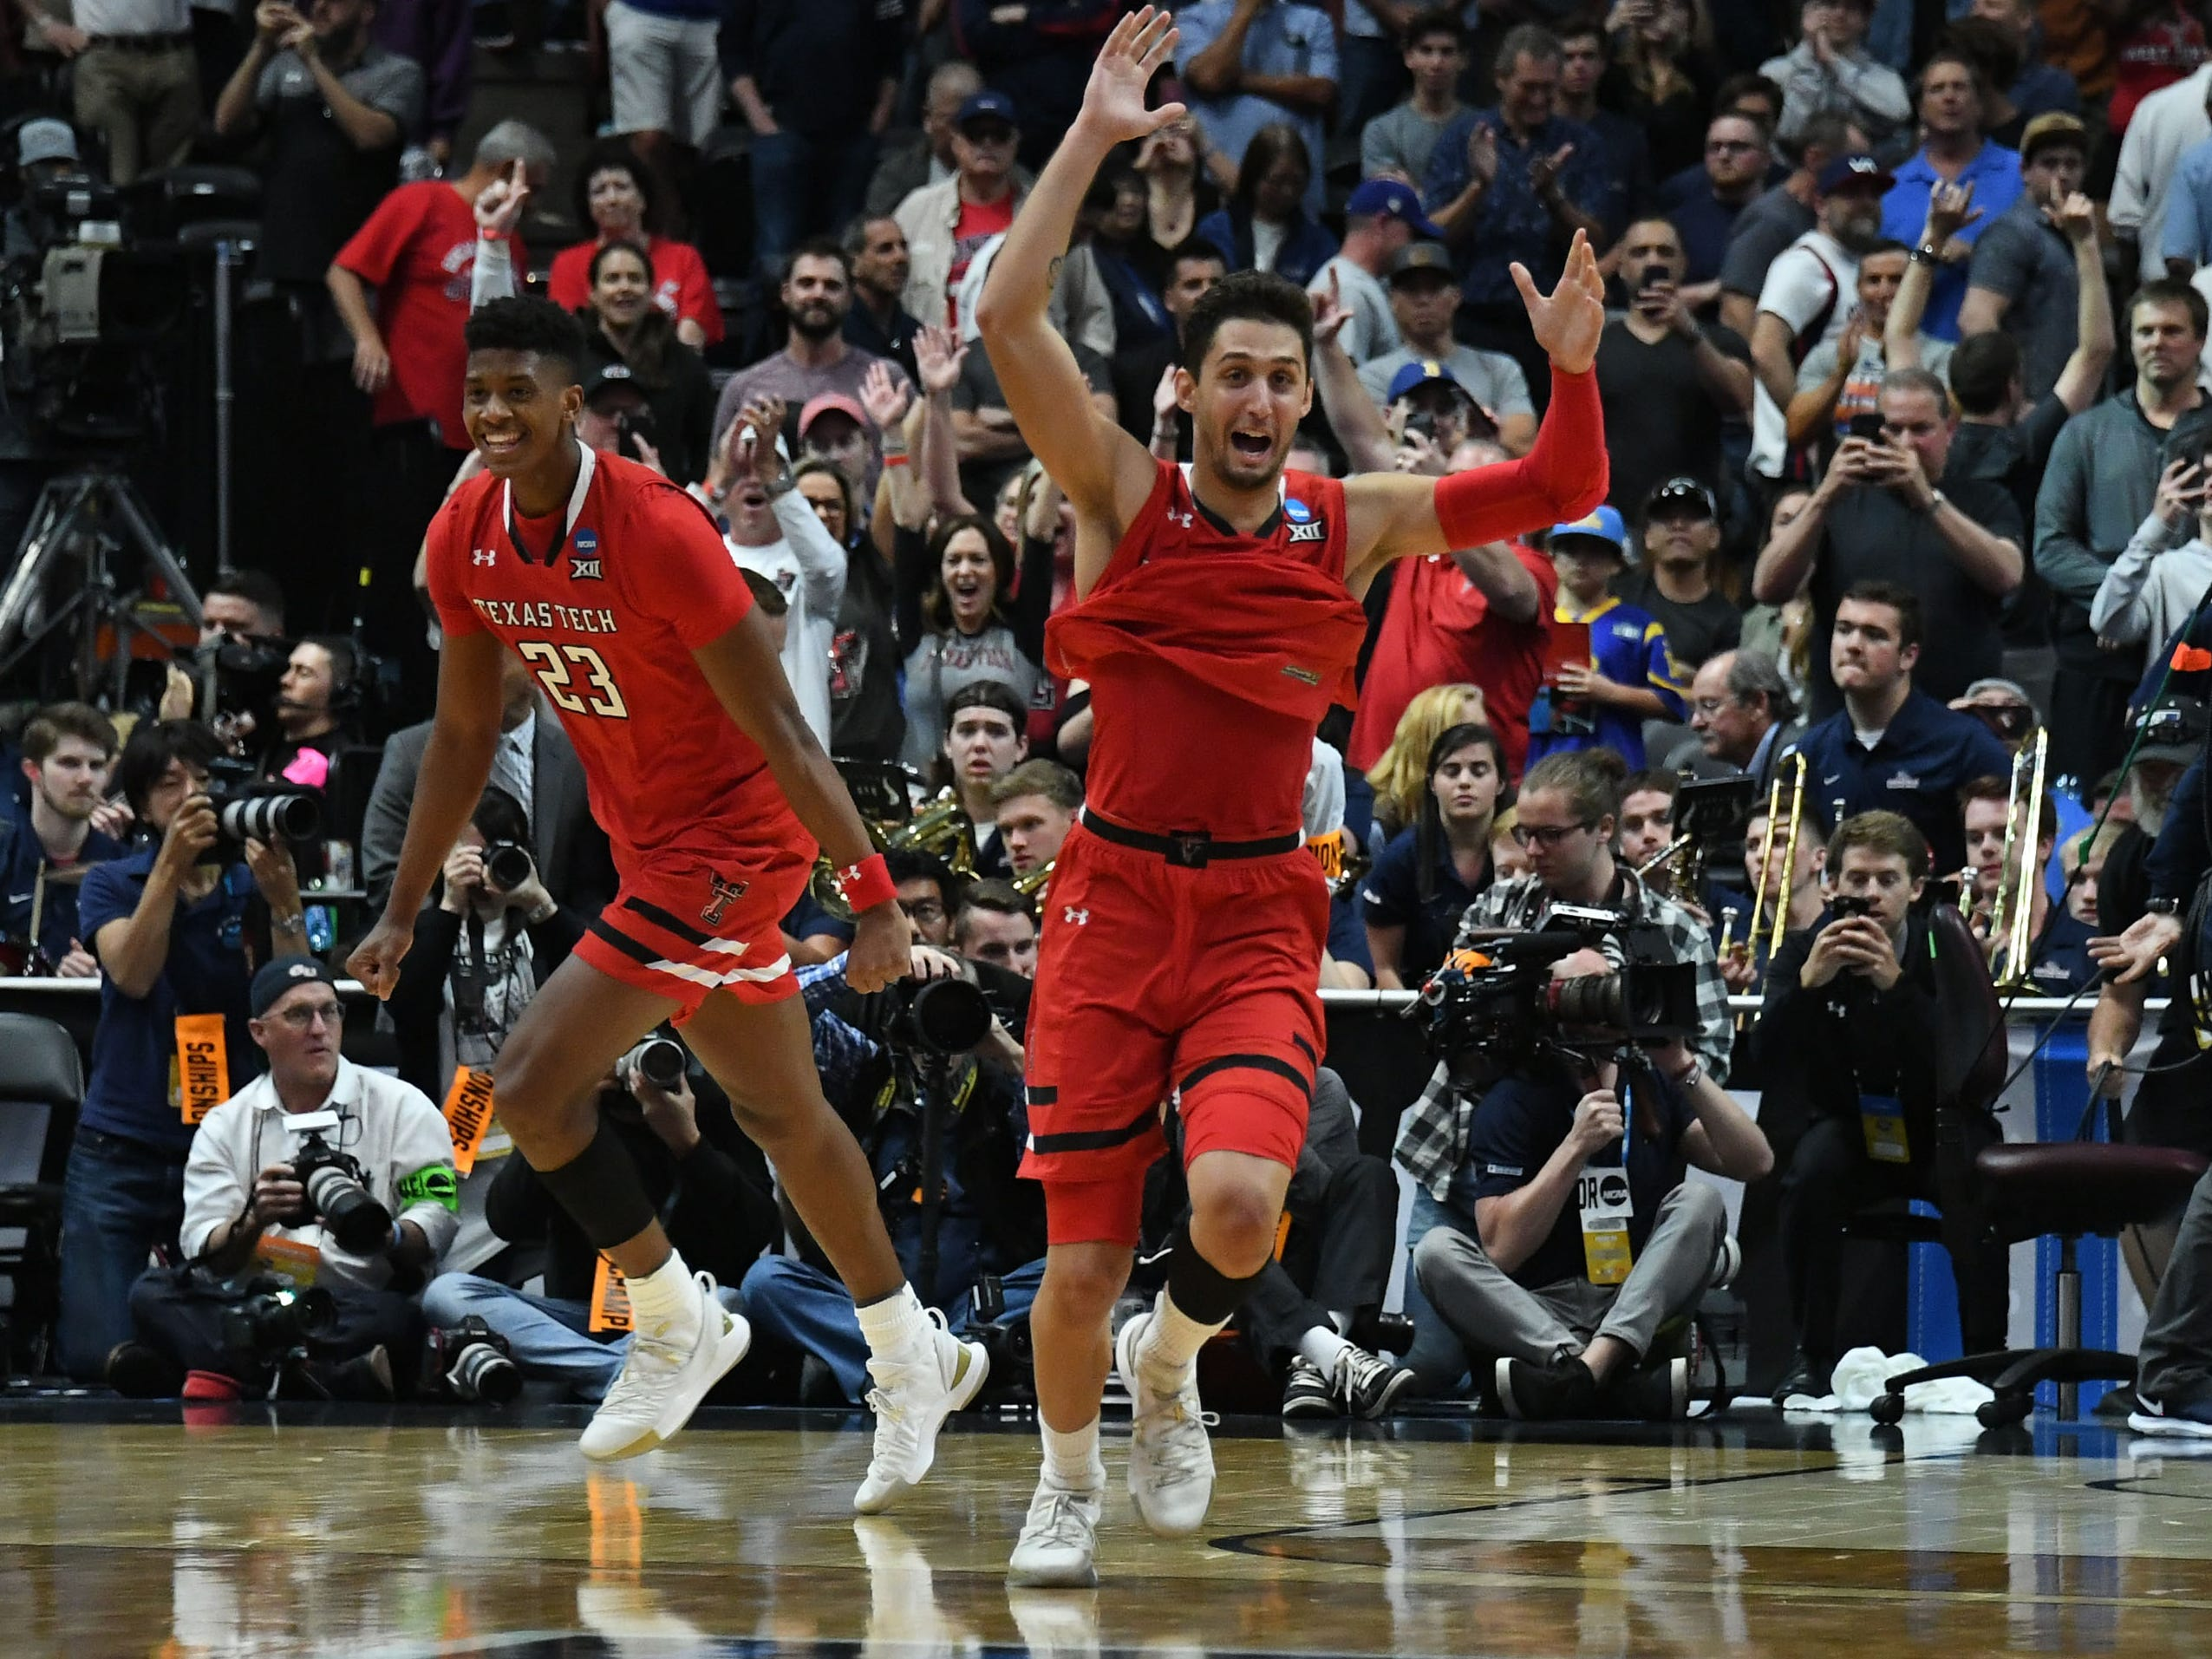 Texas Tech guard Davide Moretti celebrate after the Red Raiders reached the Final Four by beating Gonzaga.